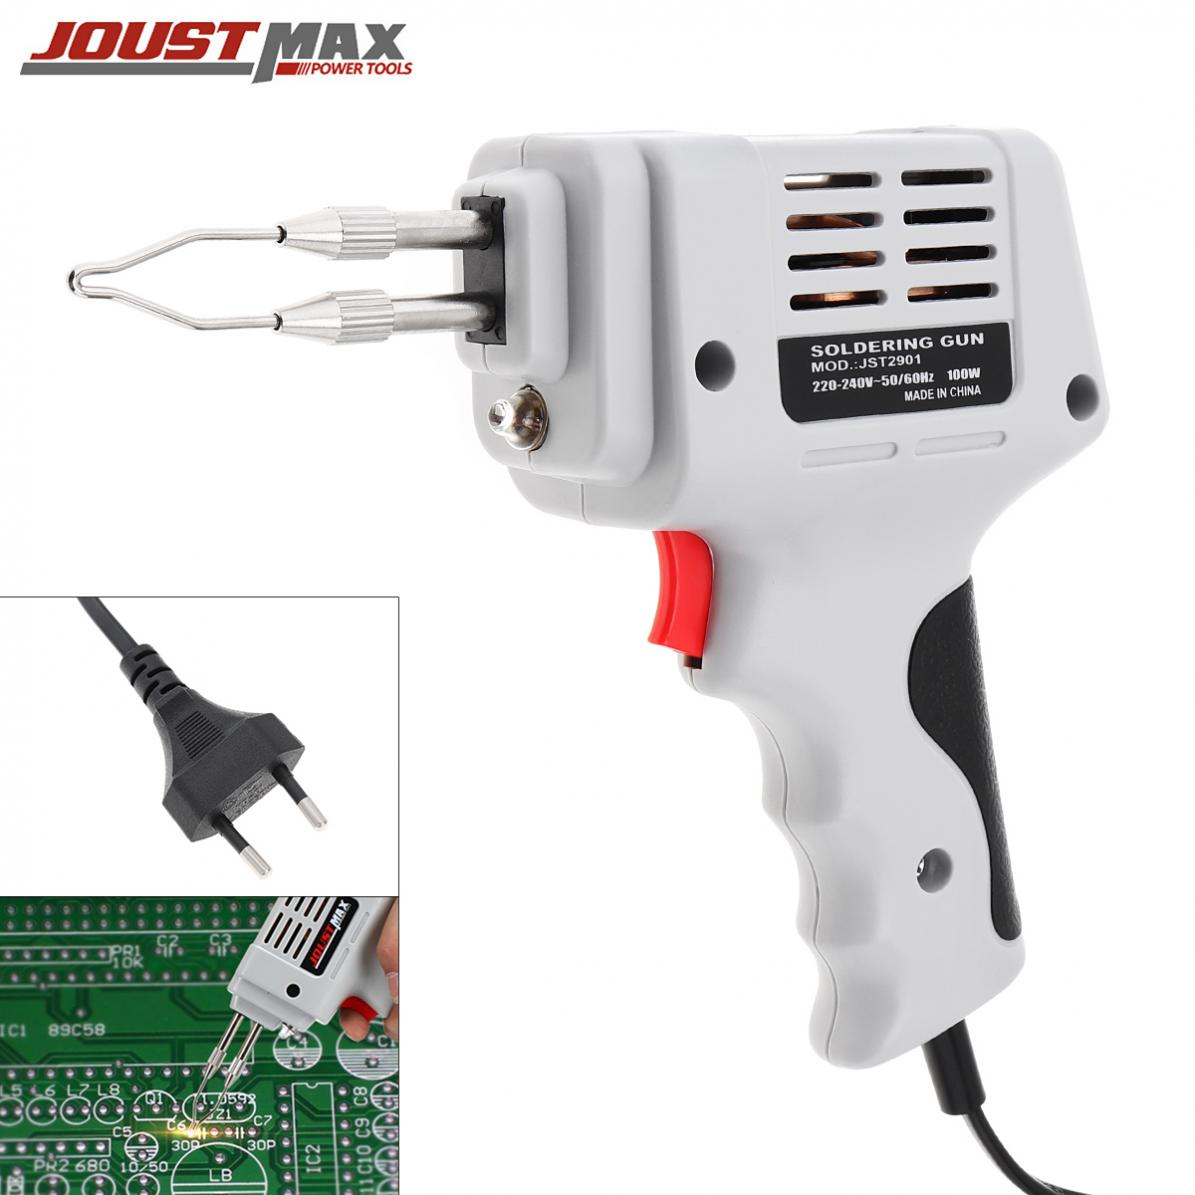 100W 220V-240V Electrical Soldering Iron Gun Fast Electric Welding Torch Tool